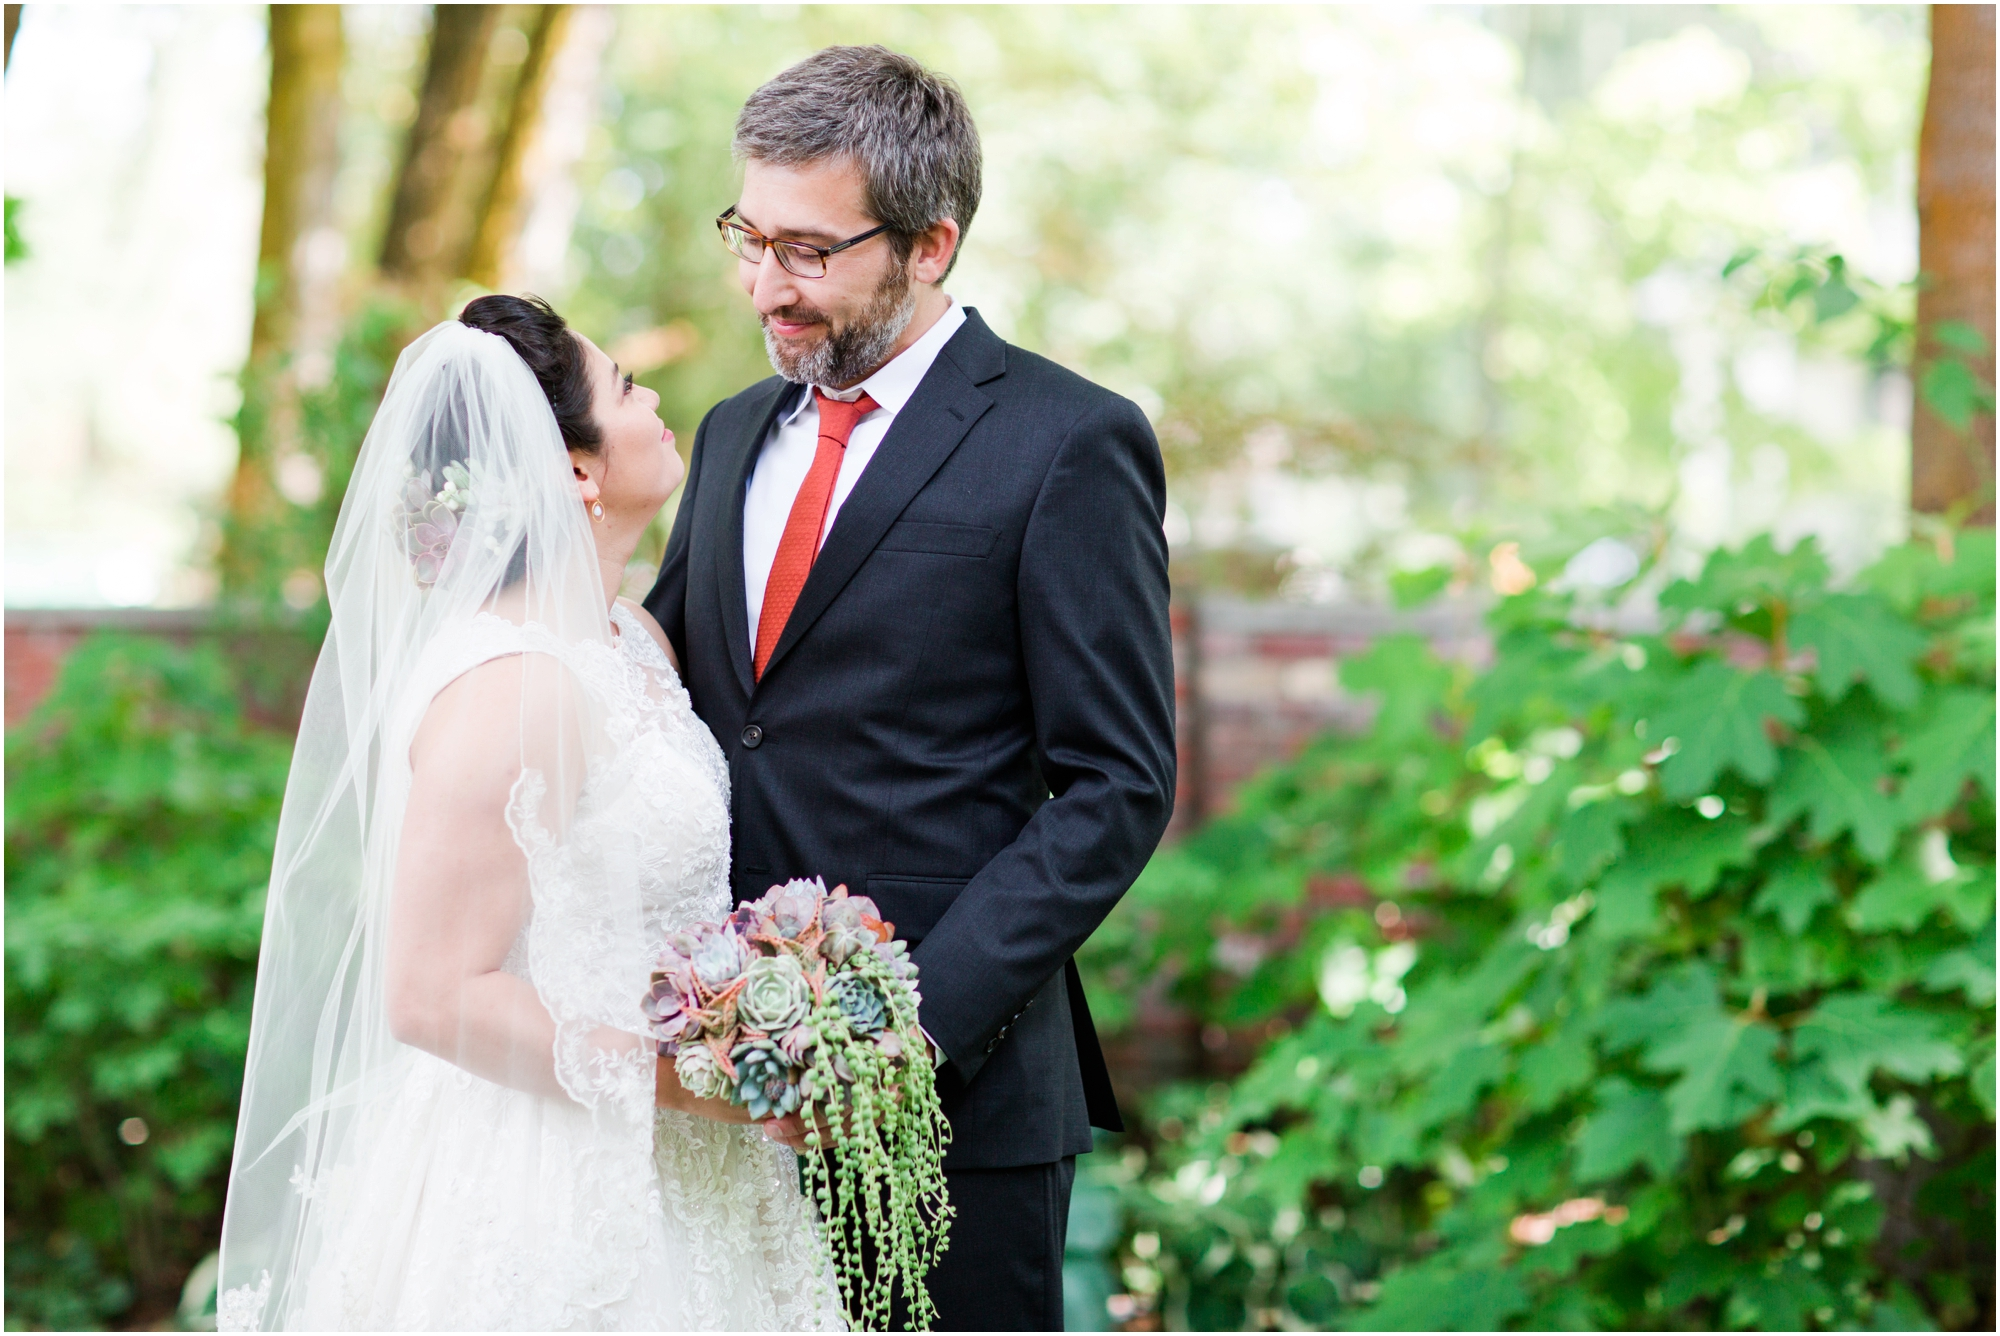 Garden wedding in Ellensburg, WA. Photos by Briana Calderon Photography based in the greater Seattle-Tacoma Area._1311.jpg